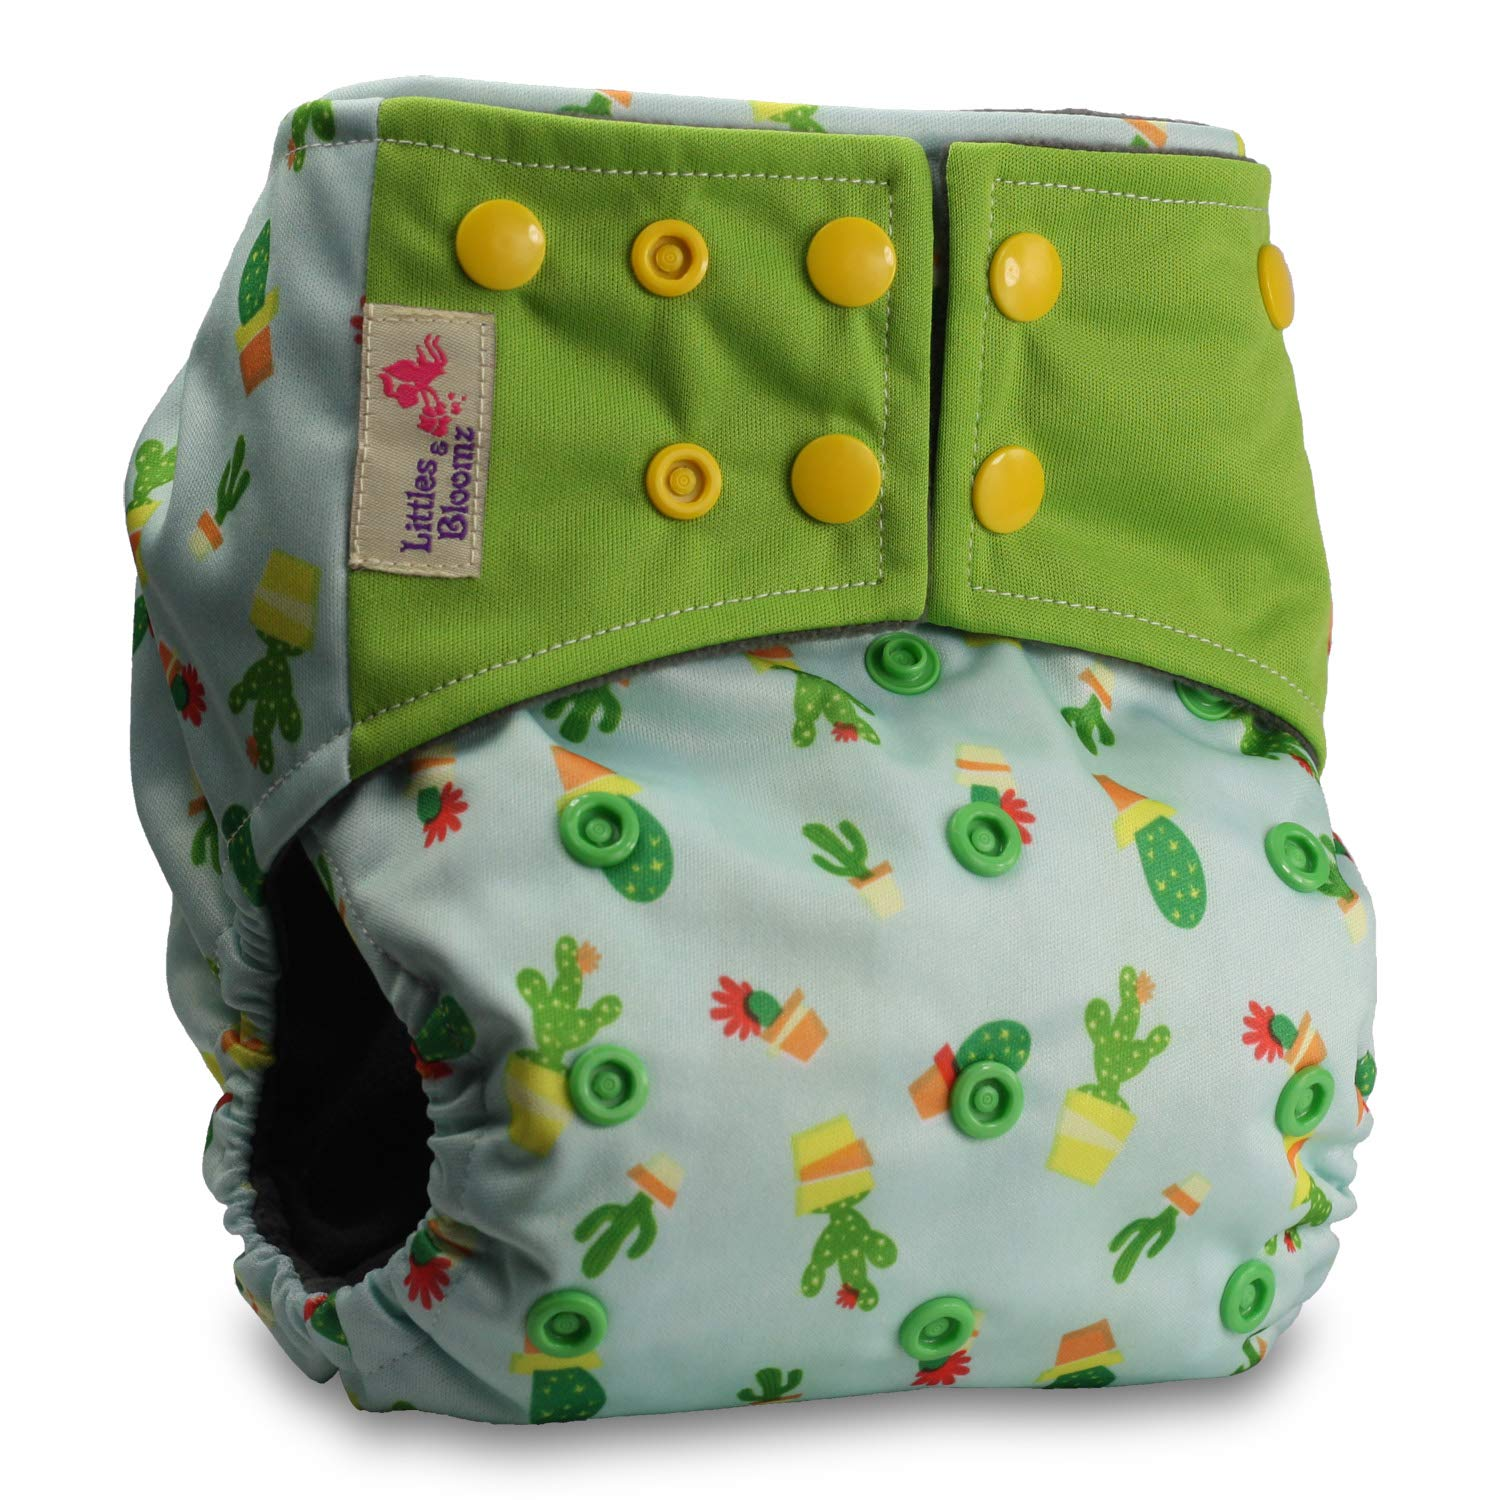 Pattern 11 Reusable Pocket Real Cloth Nappy Washable Diaper Bamboo Charcoal with 2 Bamboo Inserts Littles /& Bloomz